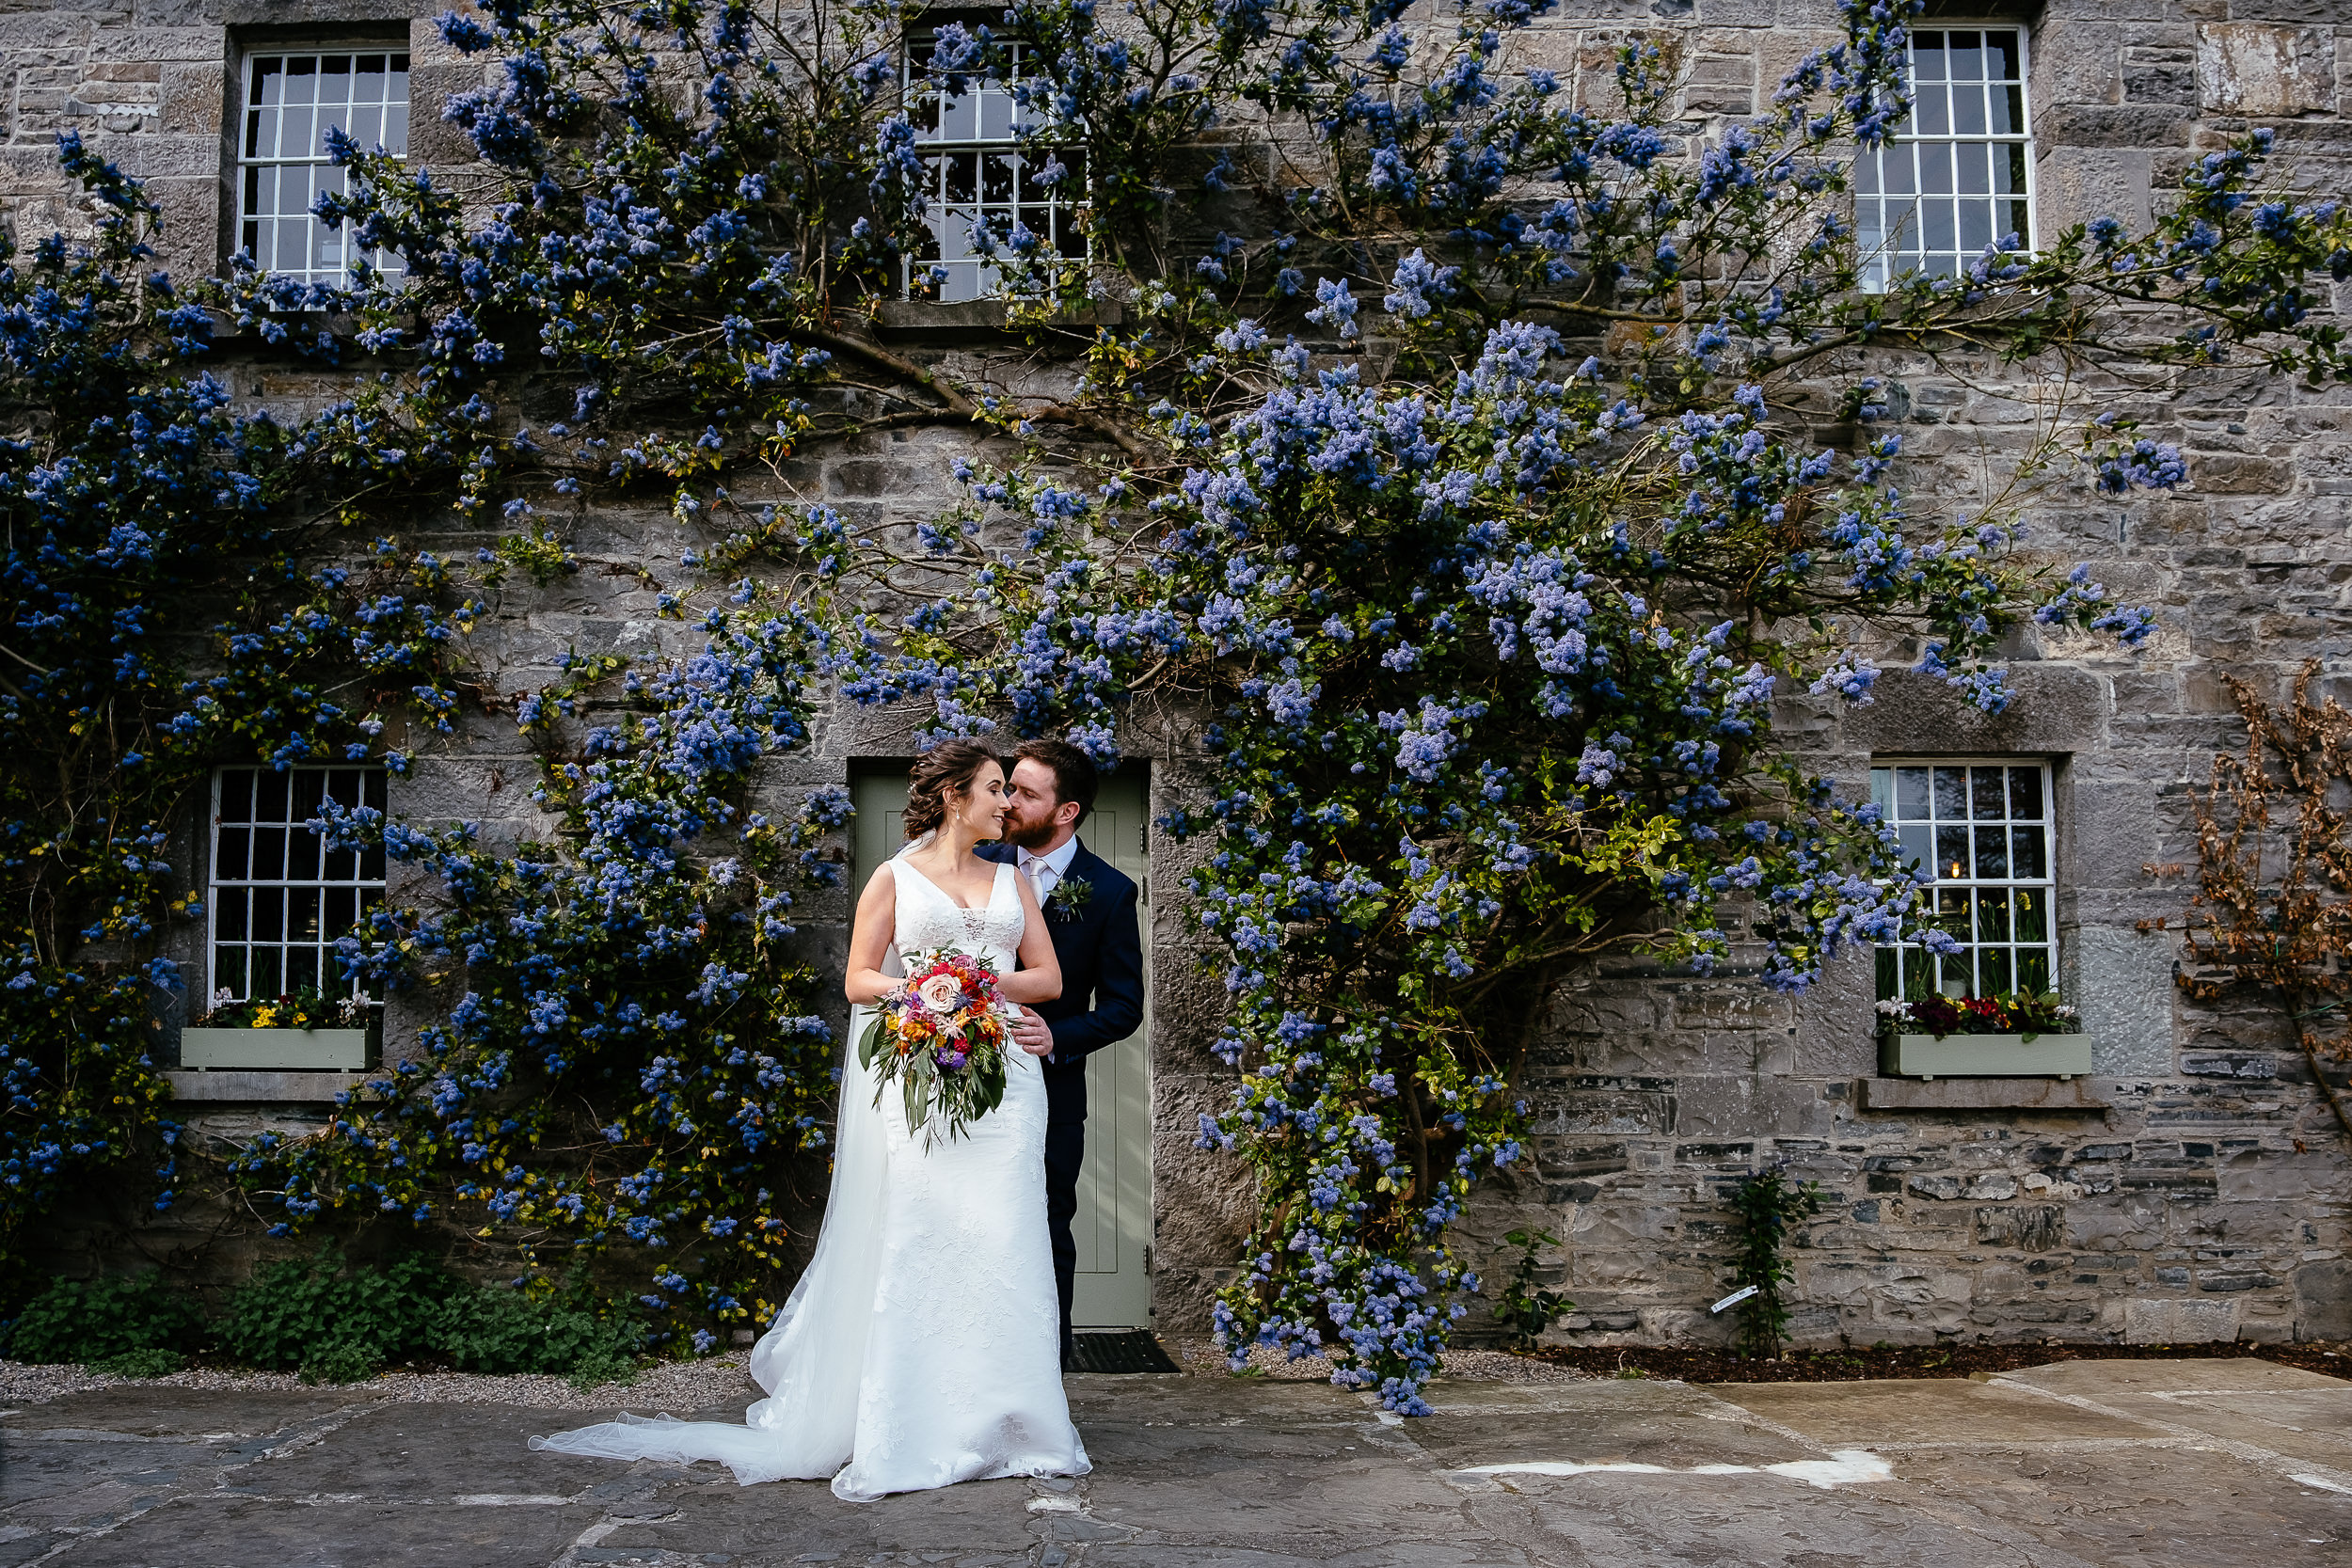 bride and groom embracing in front of doorway at Ballymagarvey village meath